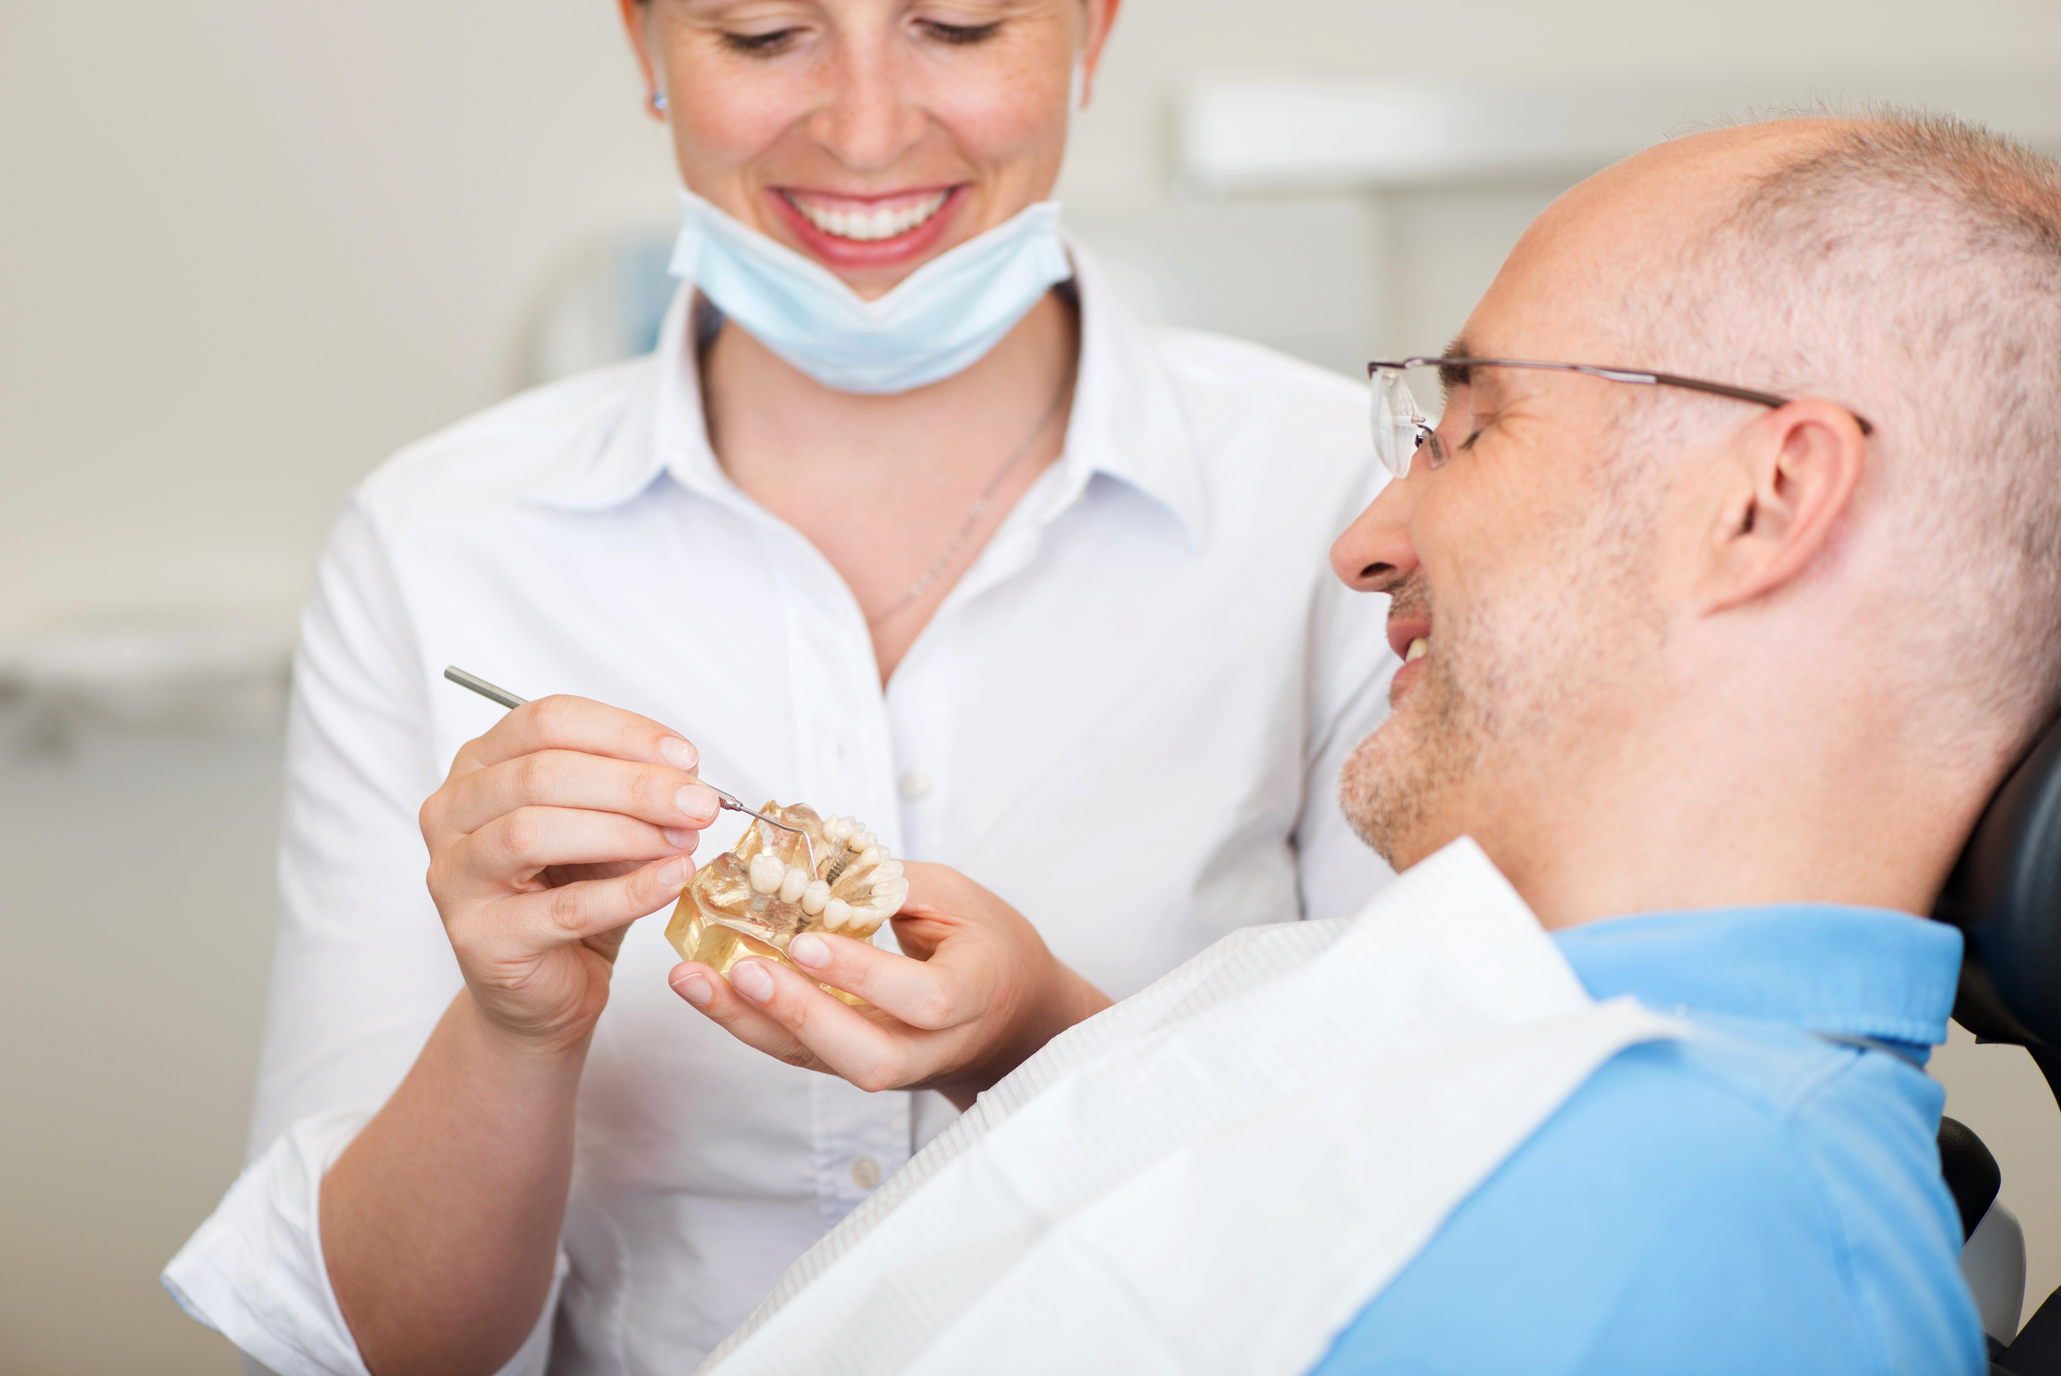 Getting Dental Implants in North London with Minimal Discomfort